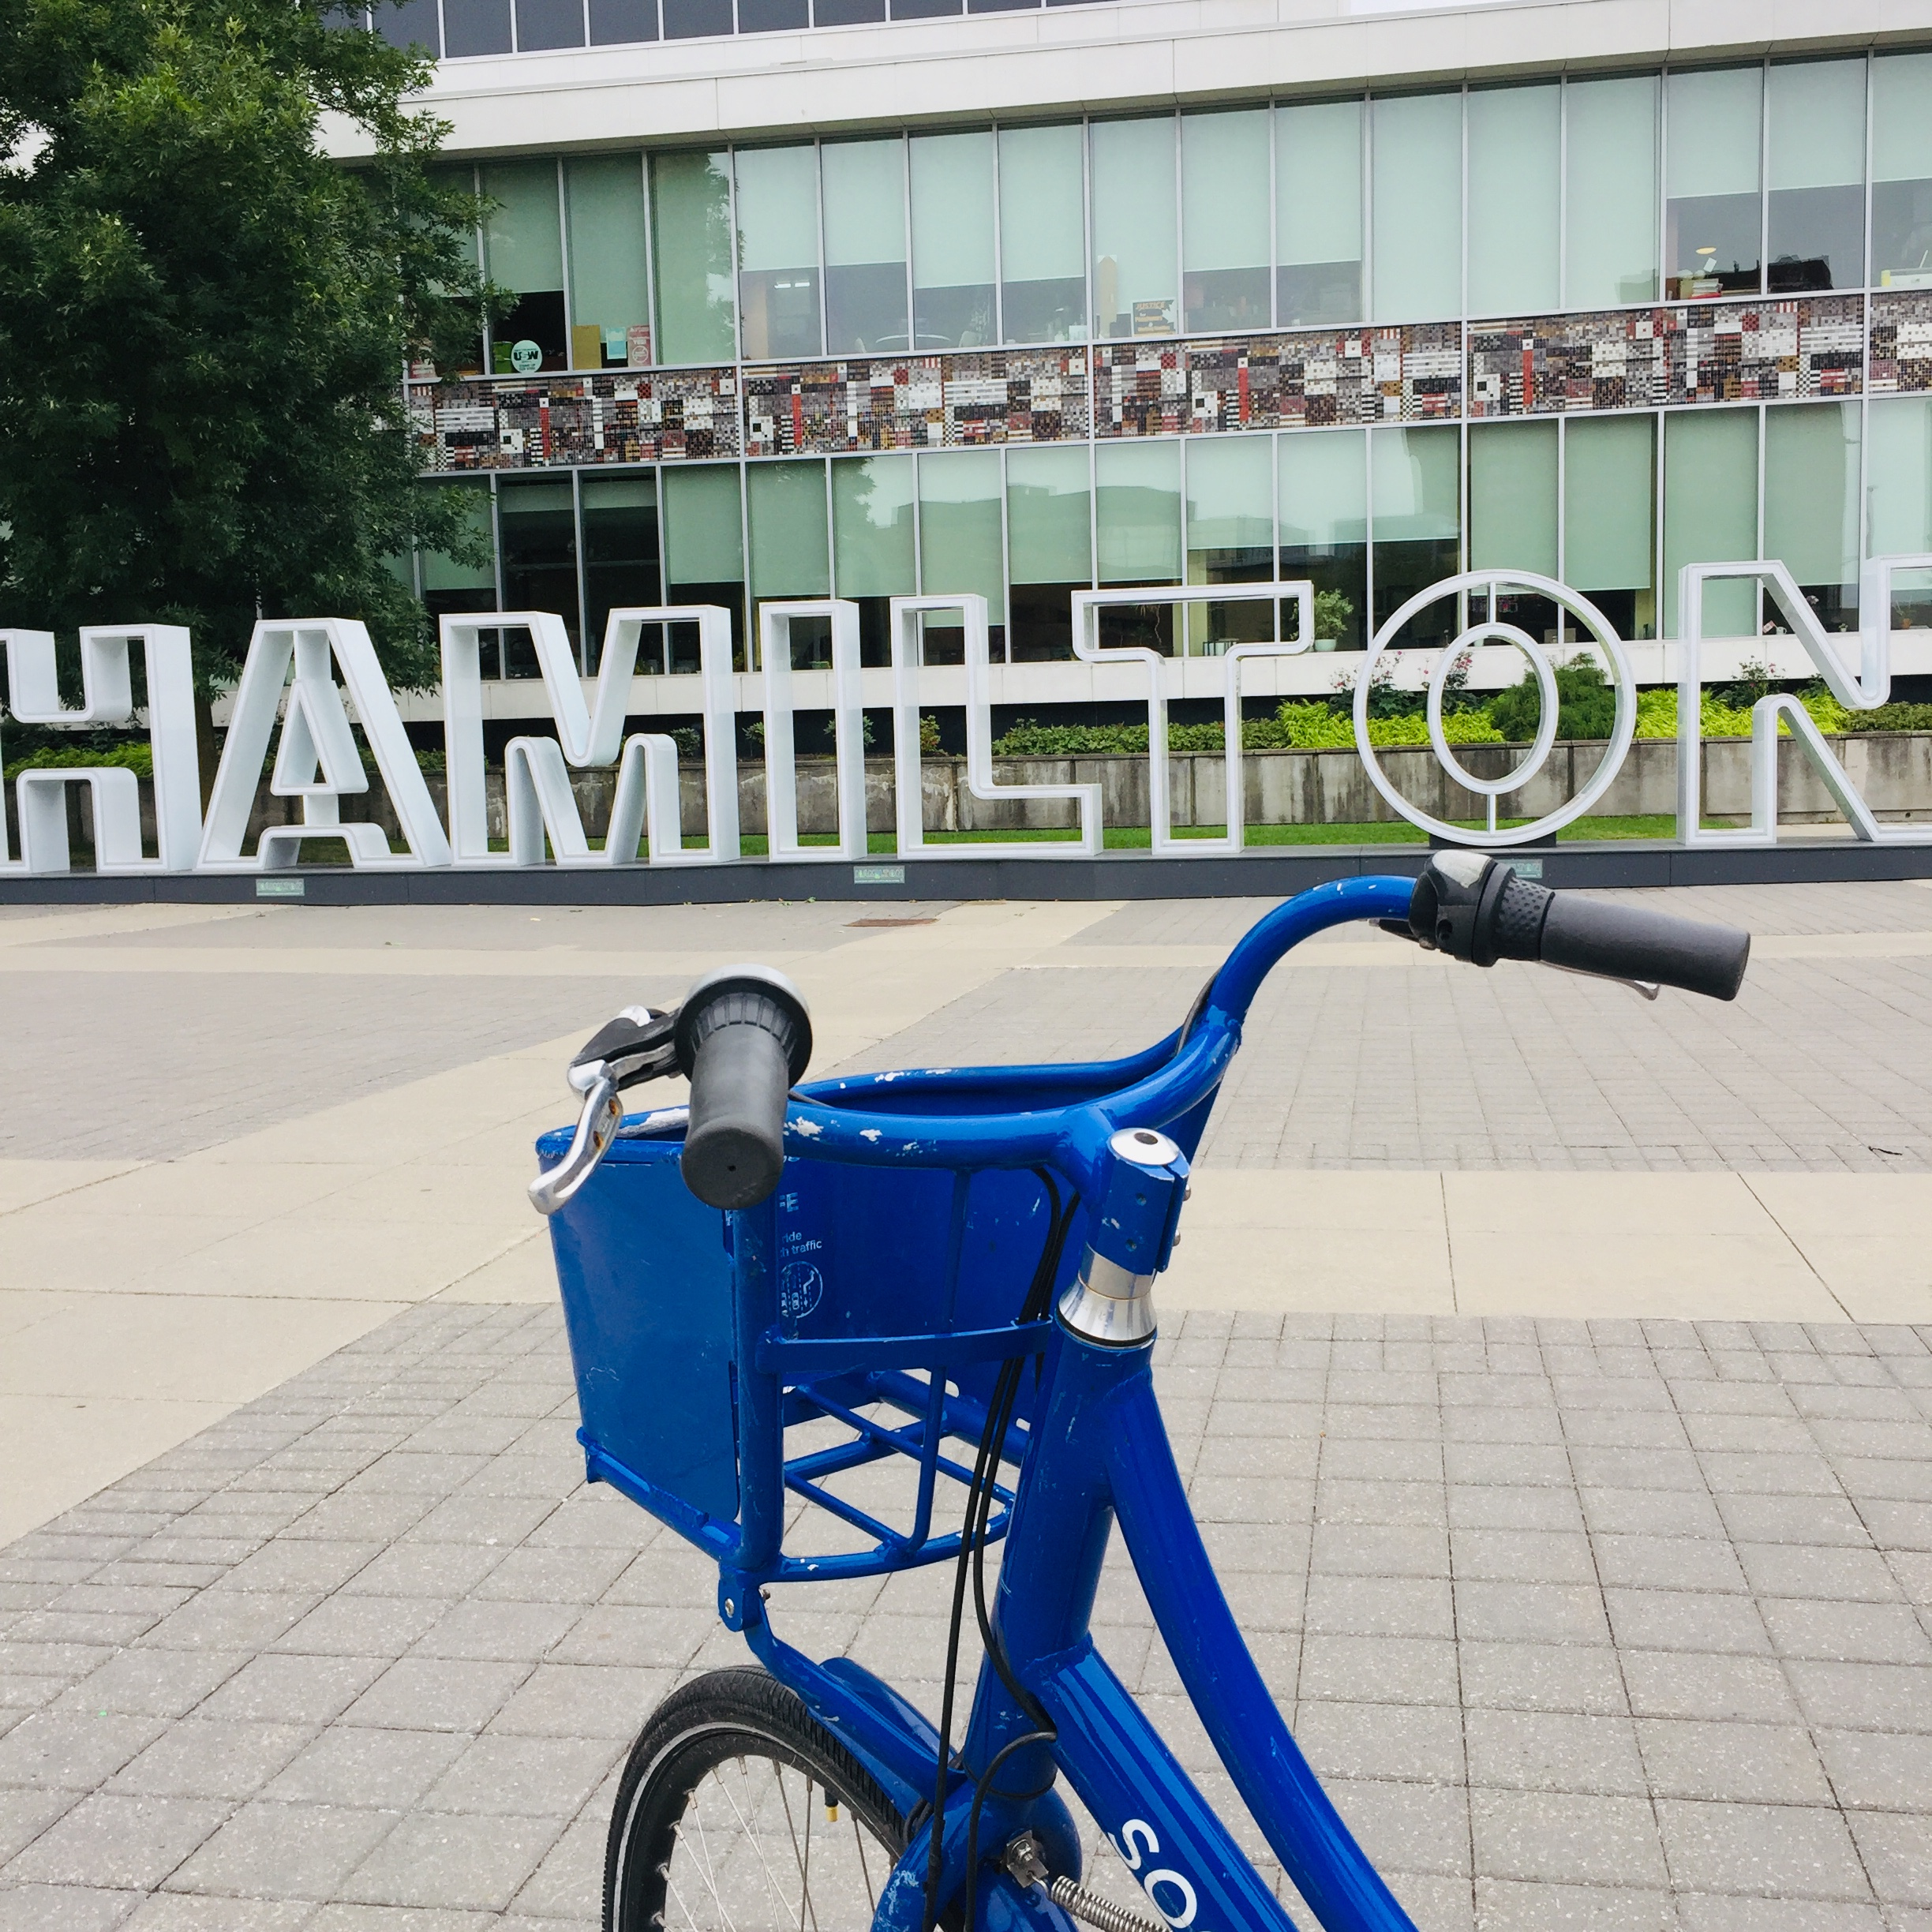 The handlebars and basket of a blue bike share bicycle captured from behind, with the Hamilton sign in the background